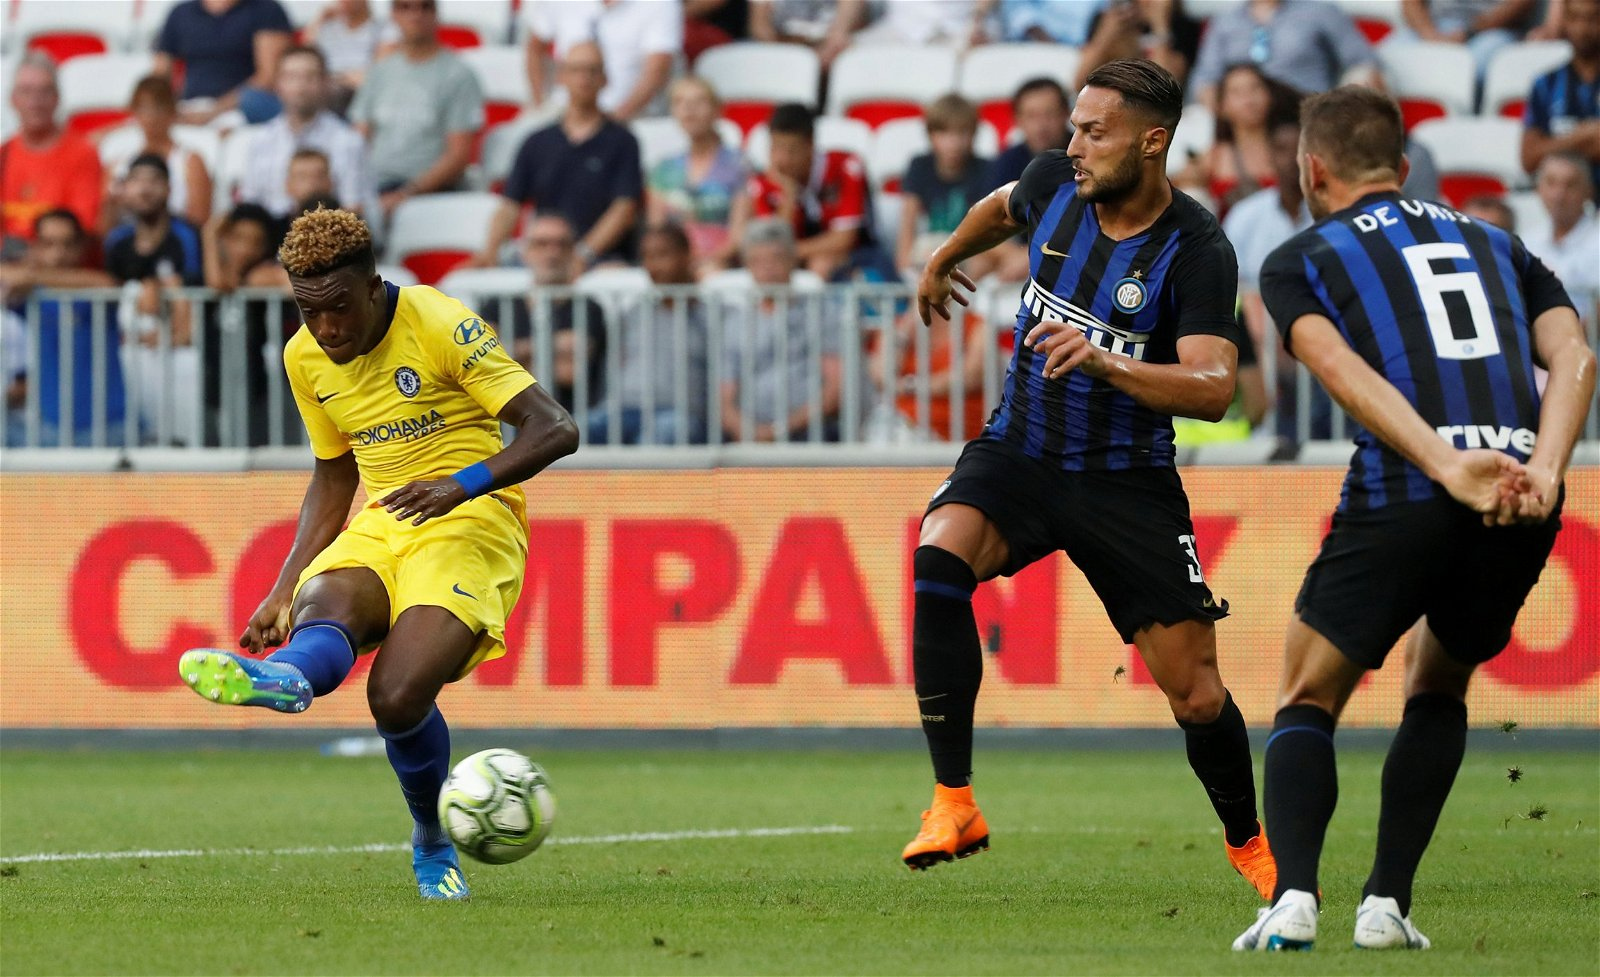 Callum Hudson-Odoi for Chelsea vs Inter Milan